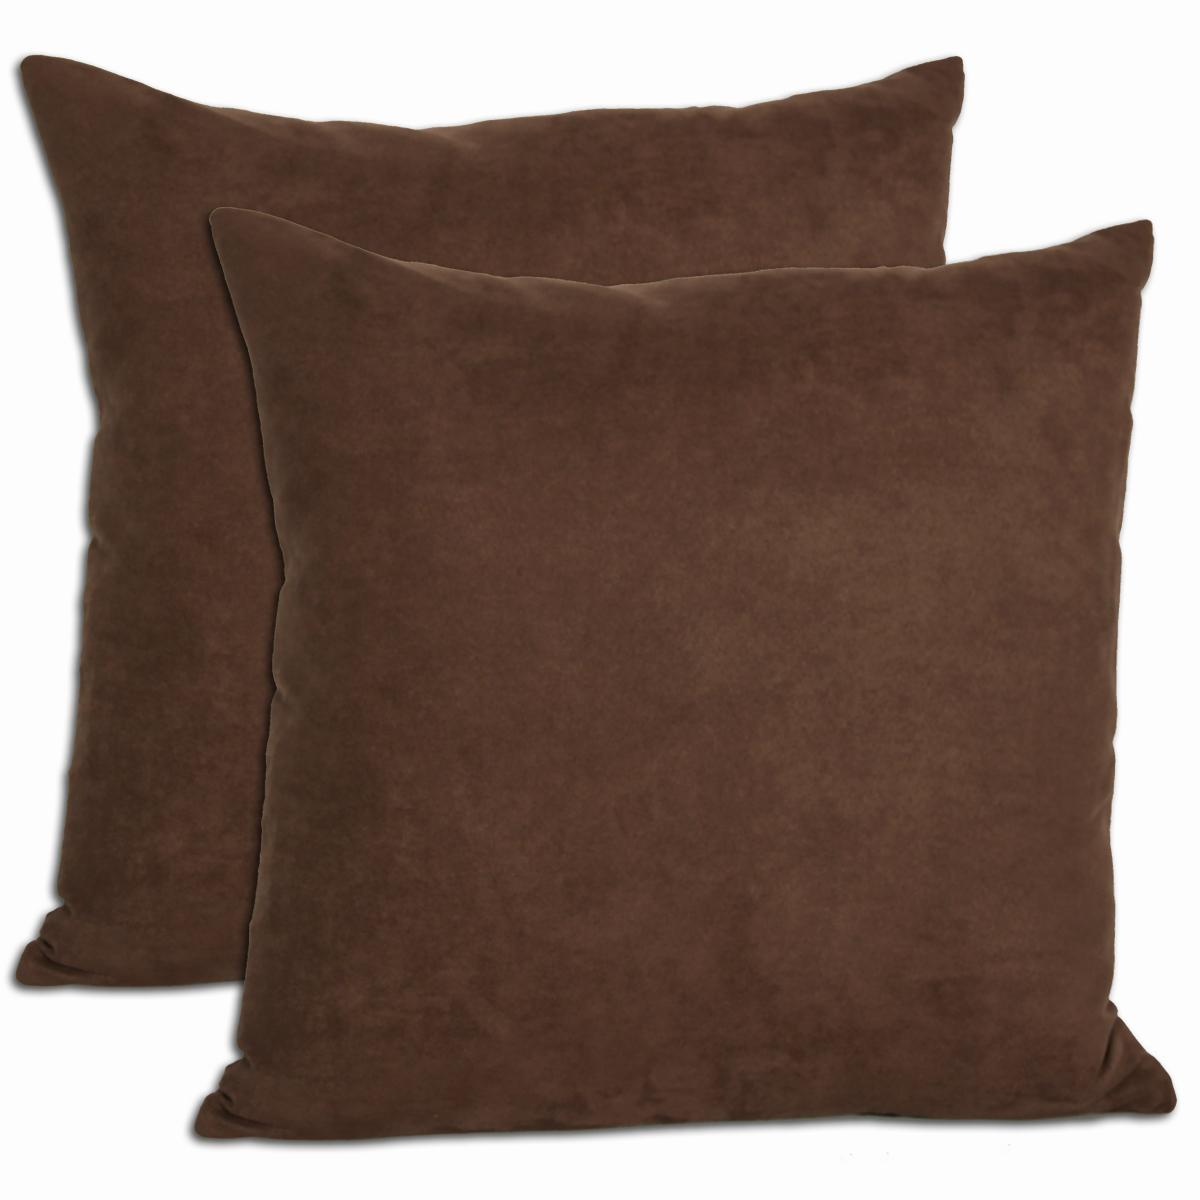 Throw Pillows For A Chocolate Brown Couch : Chocolate Microsuede Feather and Down Filled Throw Pillows (Set of 2) - Overstock Shopping ...